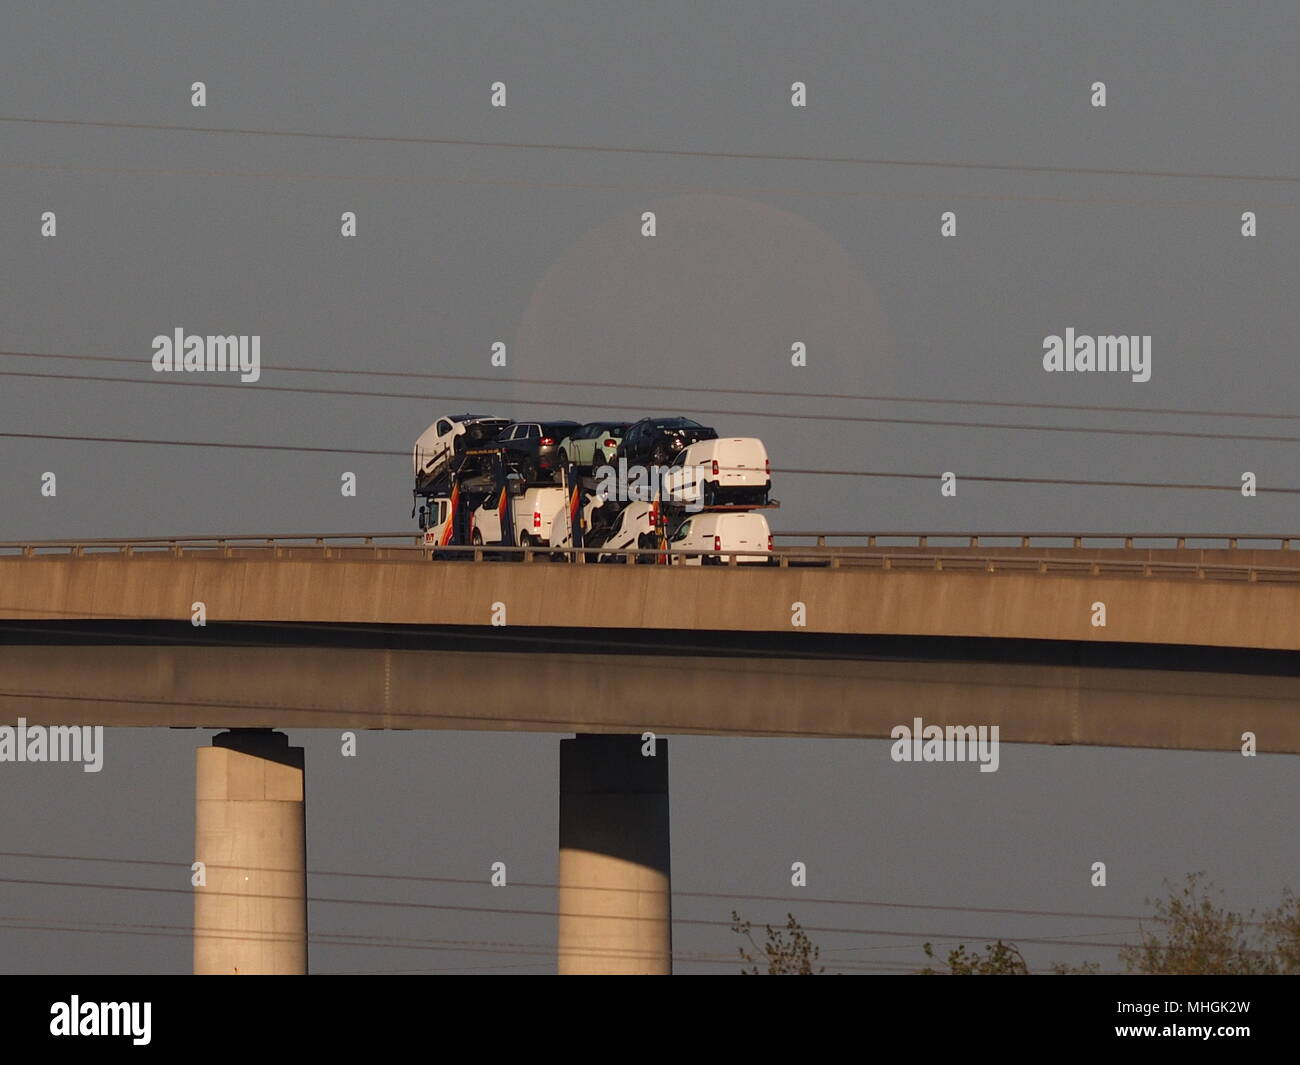 Isle of Sheppey, Kent, UK. 1st May, 2018. UK Weather: a ghostly full moon sets behind a car transporter on the Sheppey Crossing as the sun rises this morning.  Credit: James Bell/Alamy Live News Stock Photo